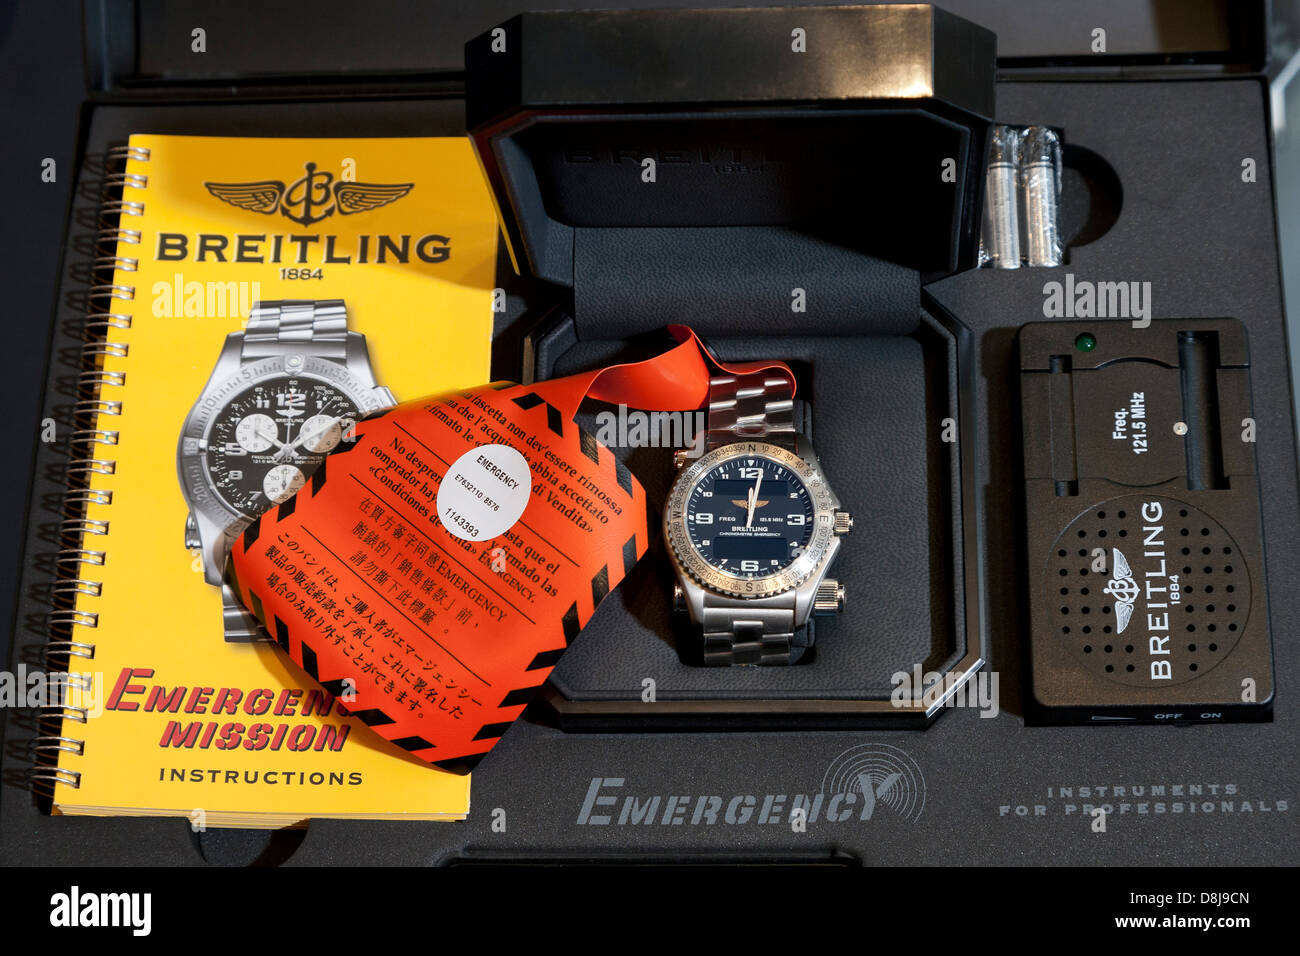 Breitling Emergency Mission Watch In Presentation Case Stock Photo